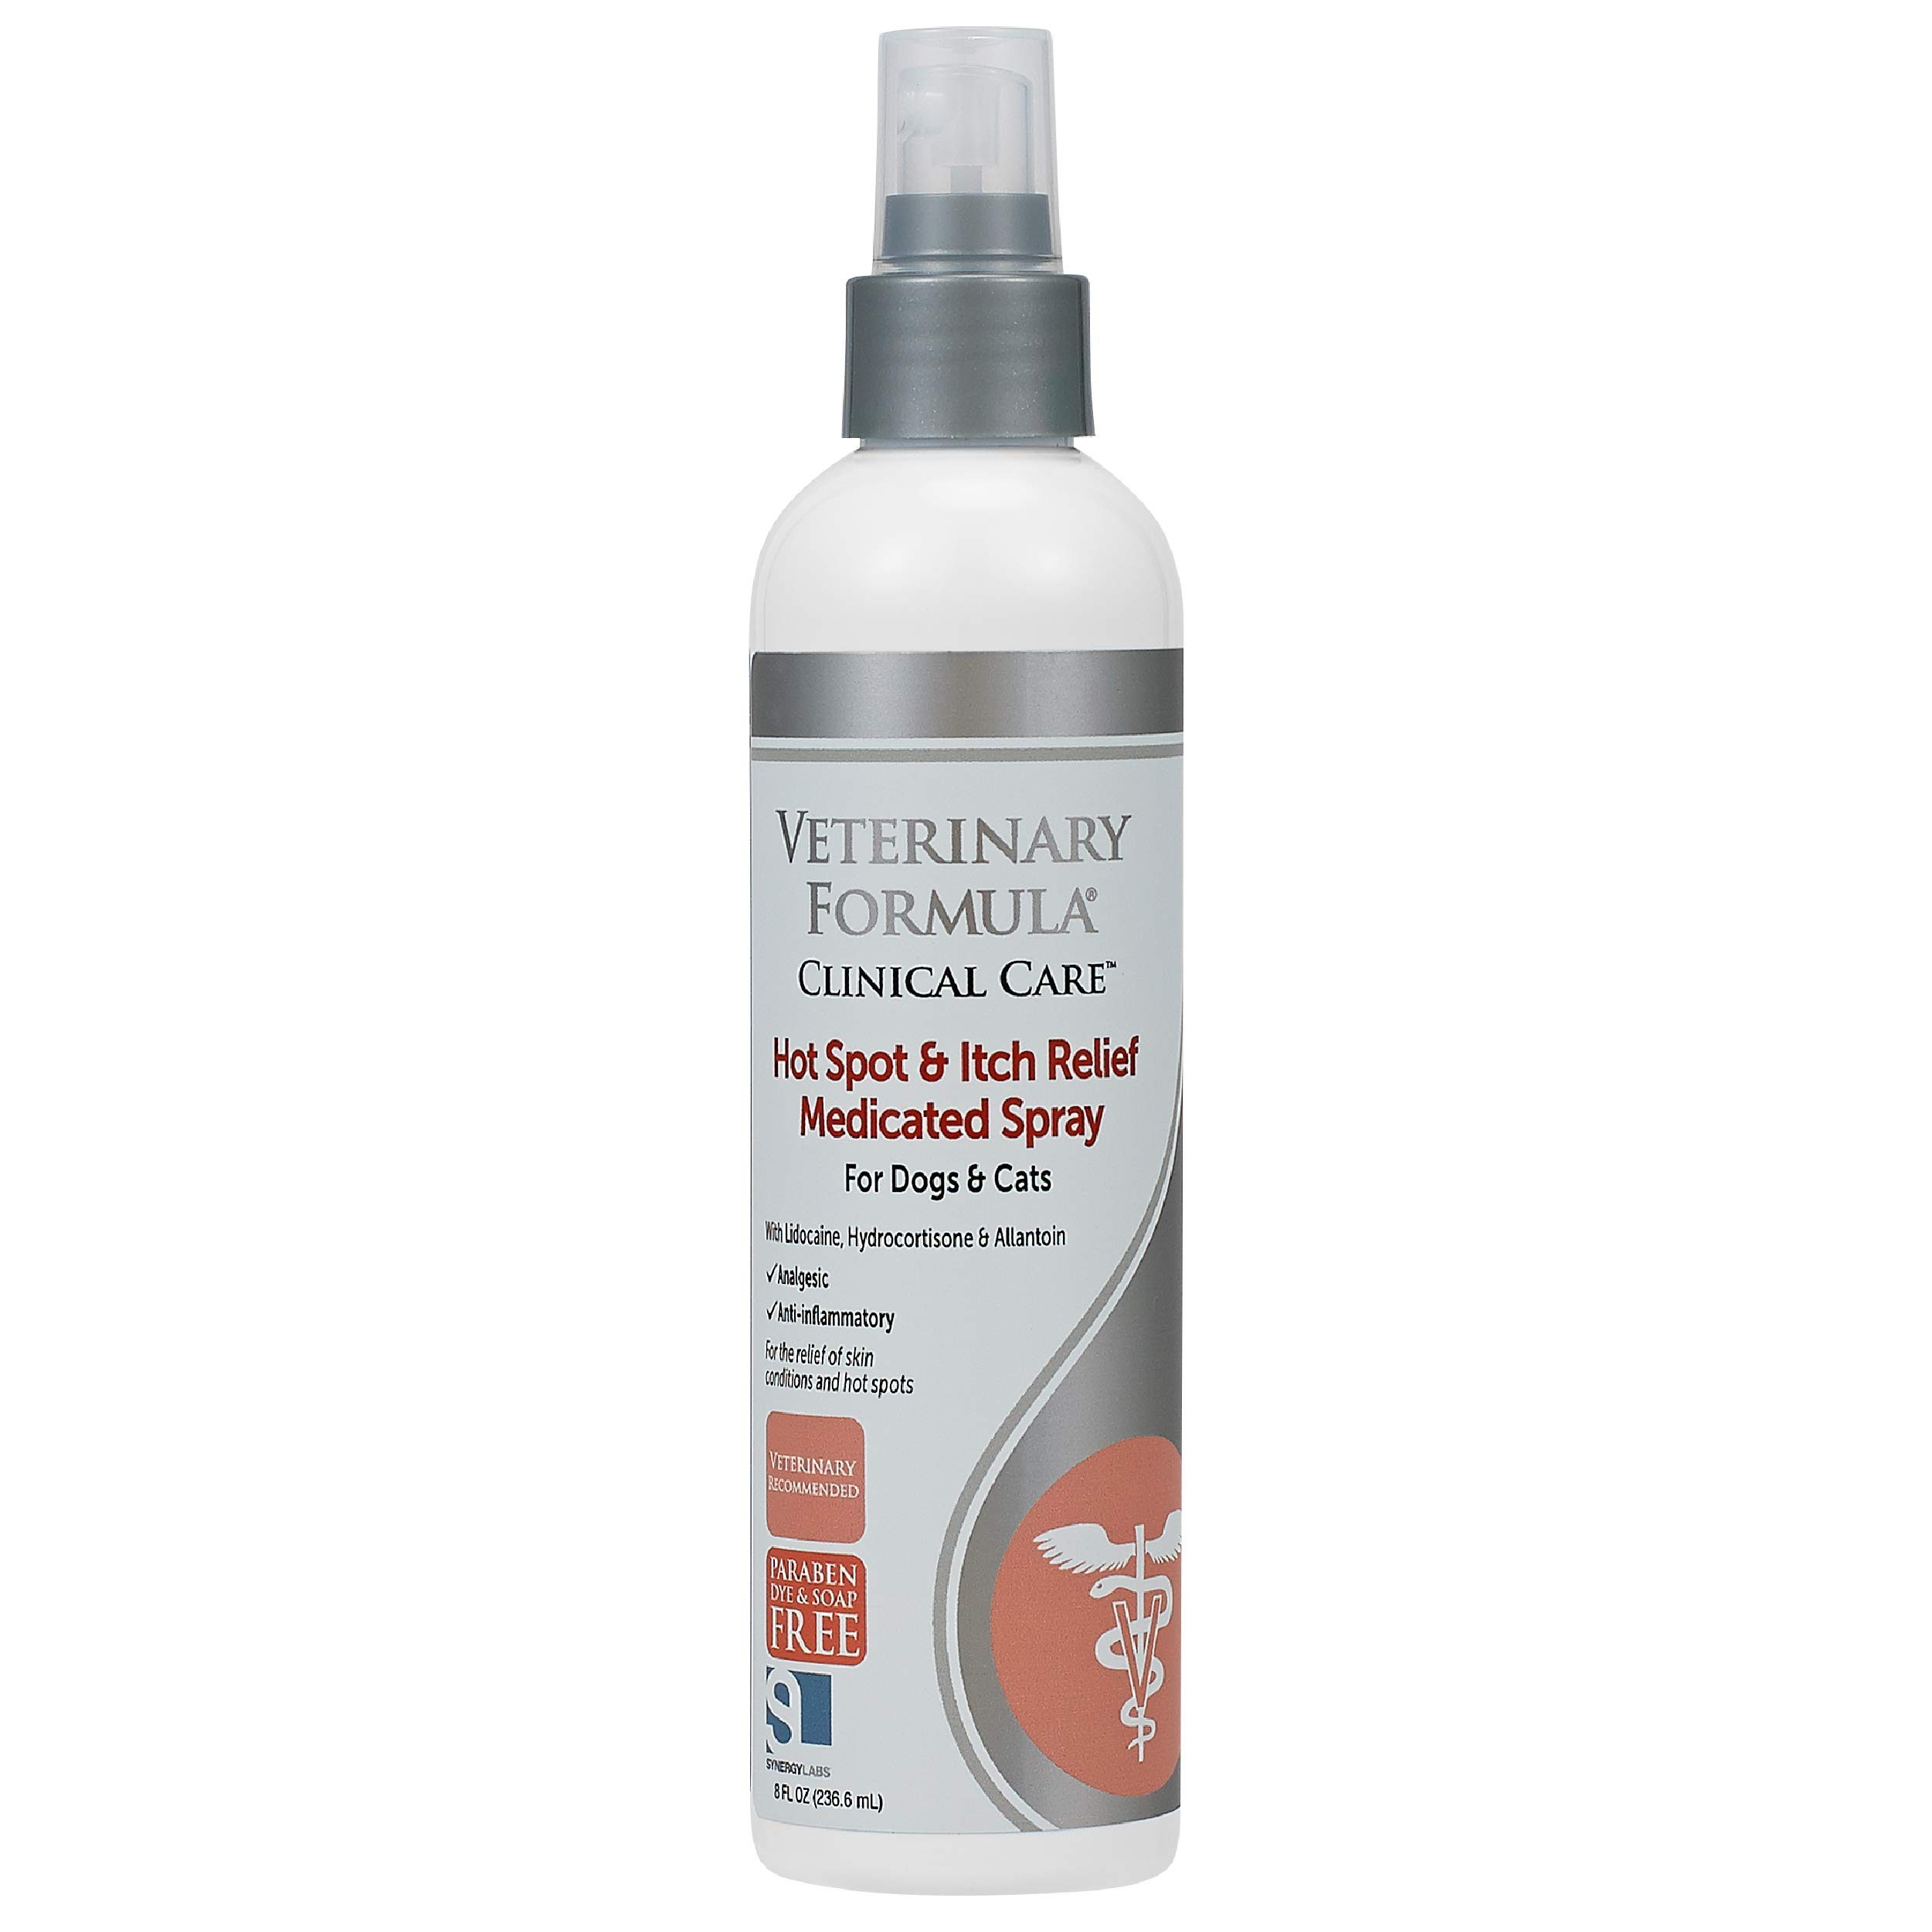 Veterinary Formula Clinical Care Hot Spot & Itch Relief Spray/Shampoo for Dogs and Cats